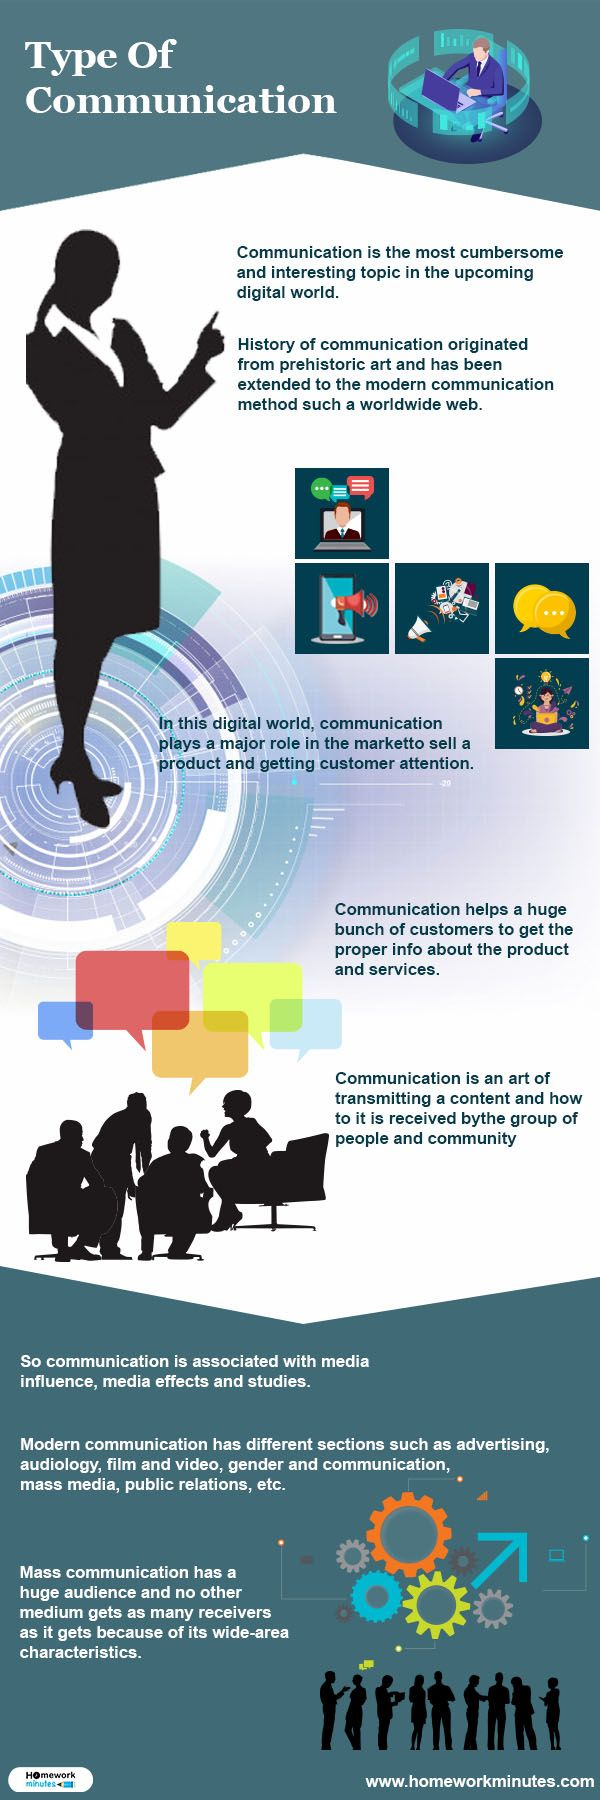 Communication Types And Uses To Help You Converse Better Communication Public Speaking Communications